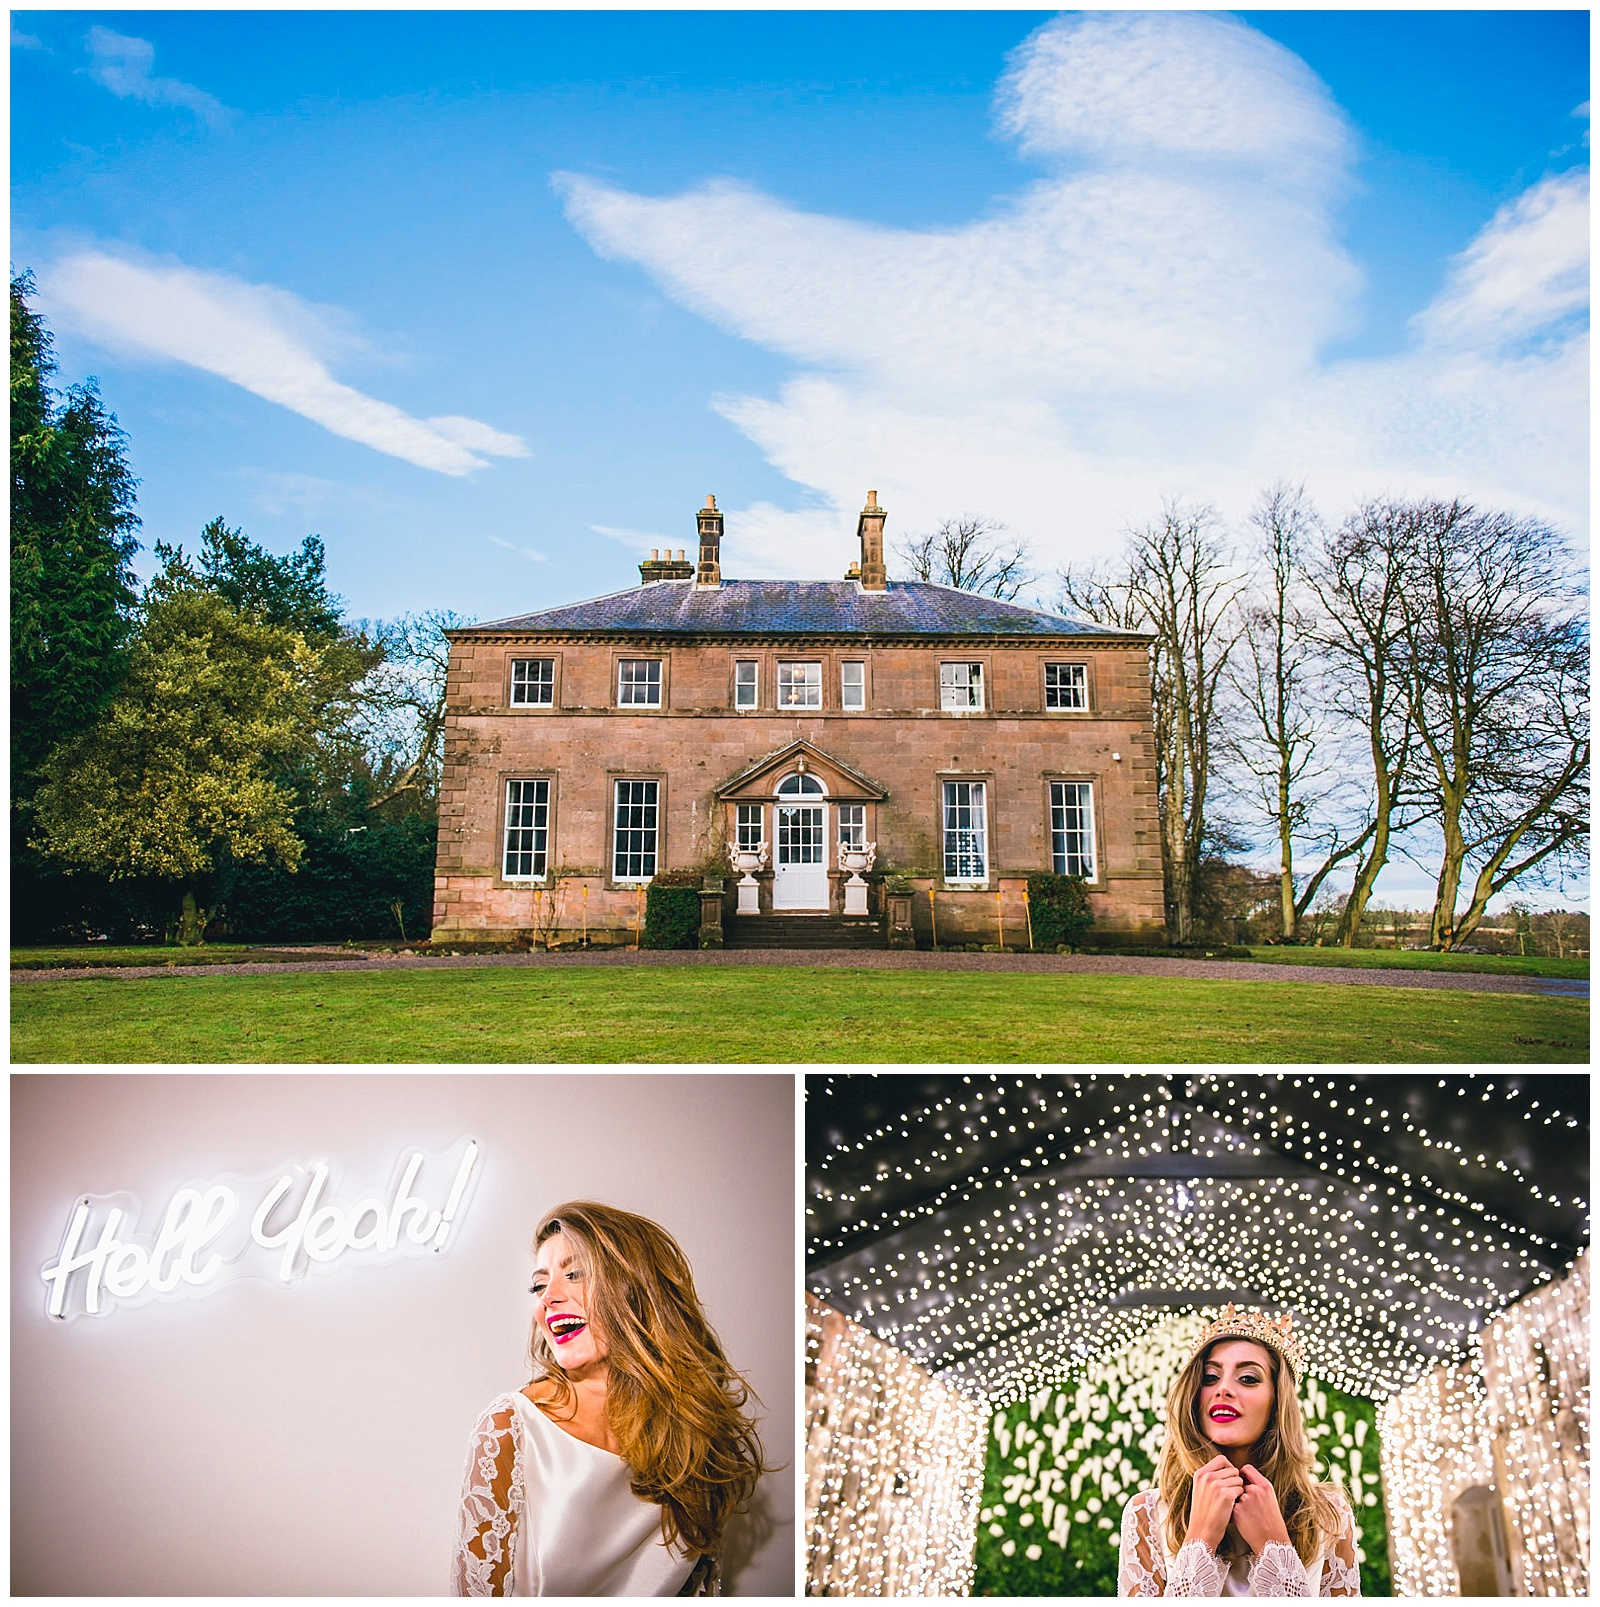 Charlton Hall Wedding Venue